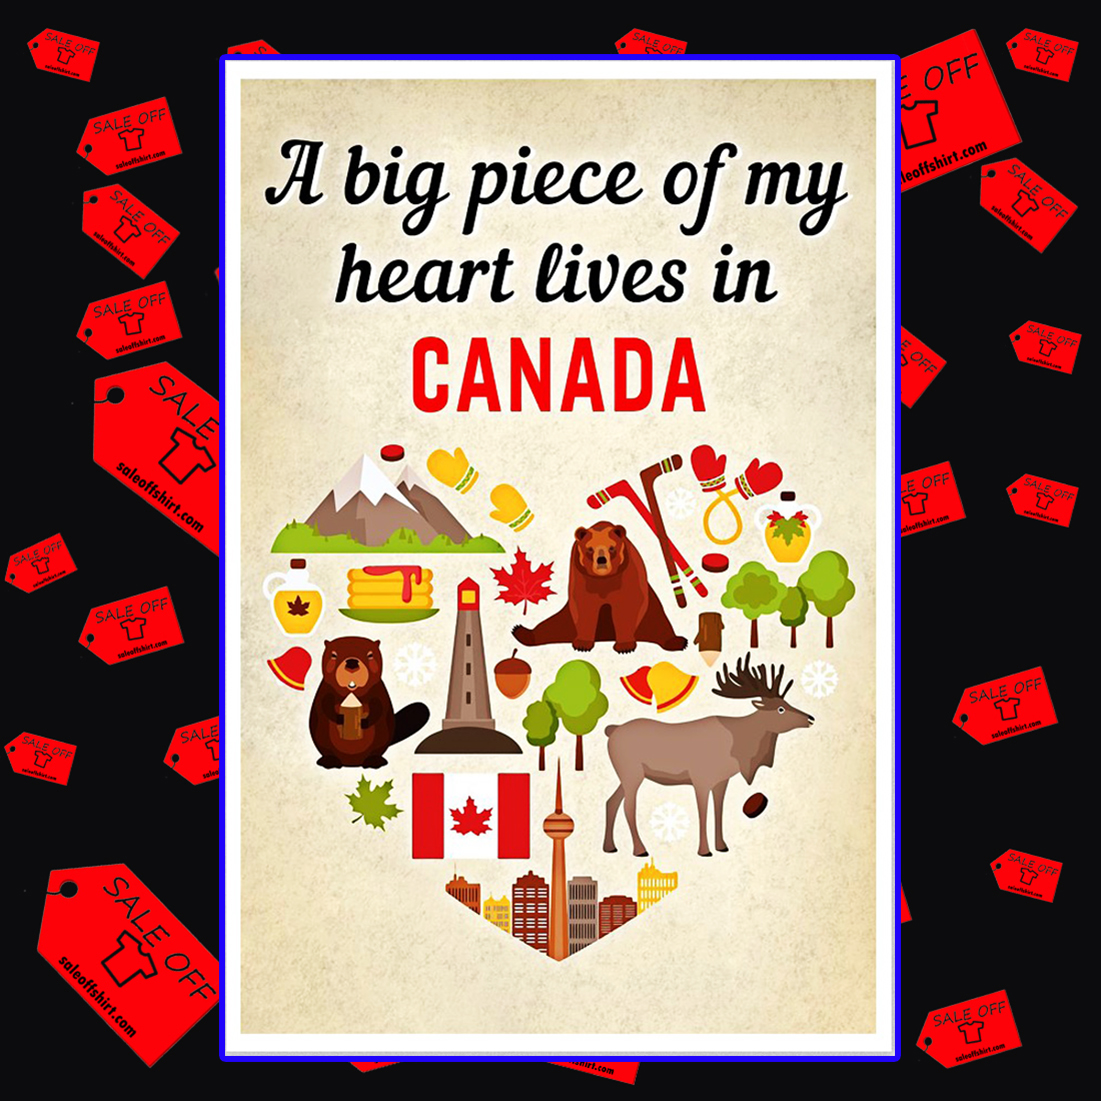 A big piece of my heart lives in Canada poster 11x17